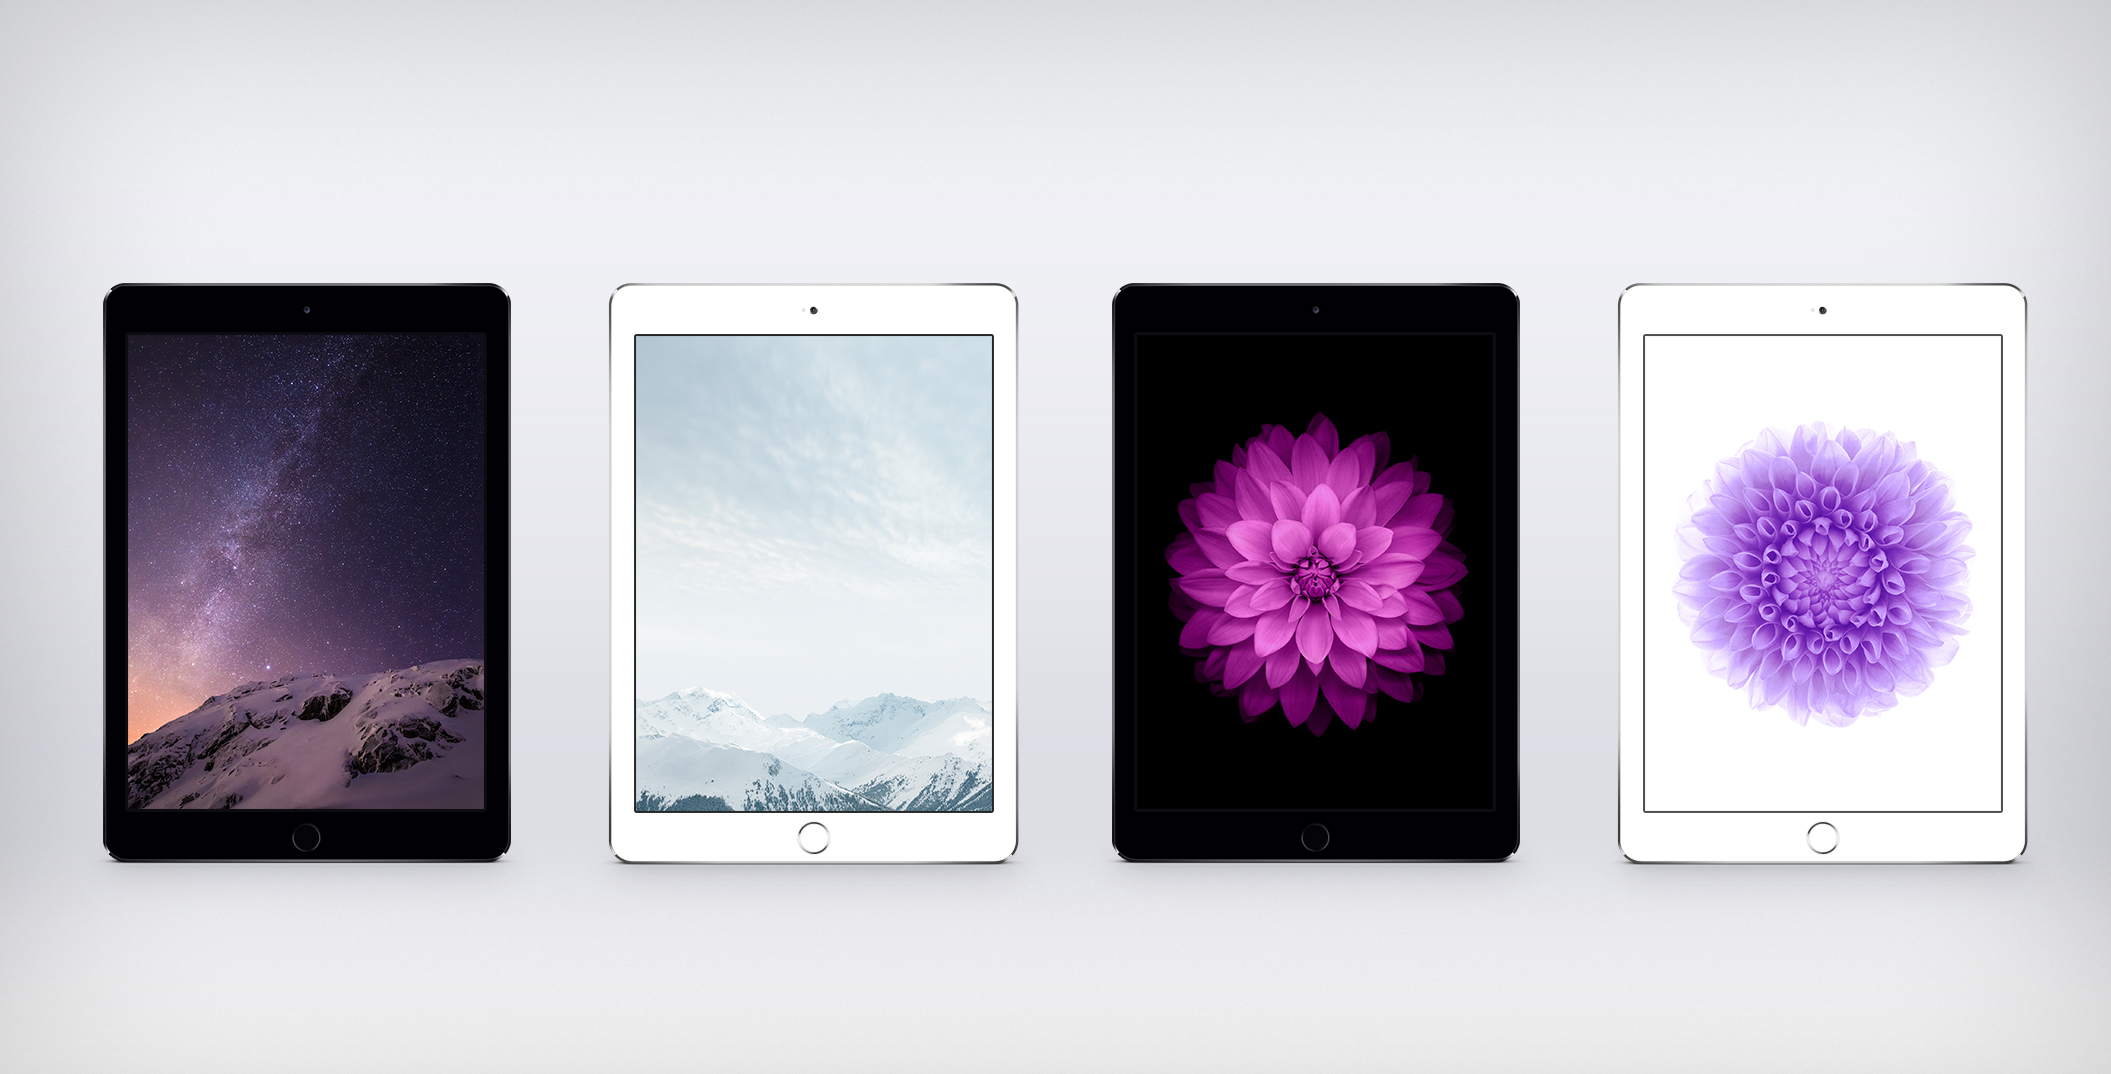 Ipad Wallpaper For Iphone X 8 7 6: IOS 8 GM Wallpapers For IPad By JasonZigrino On DeviantArt